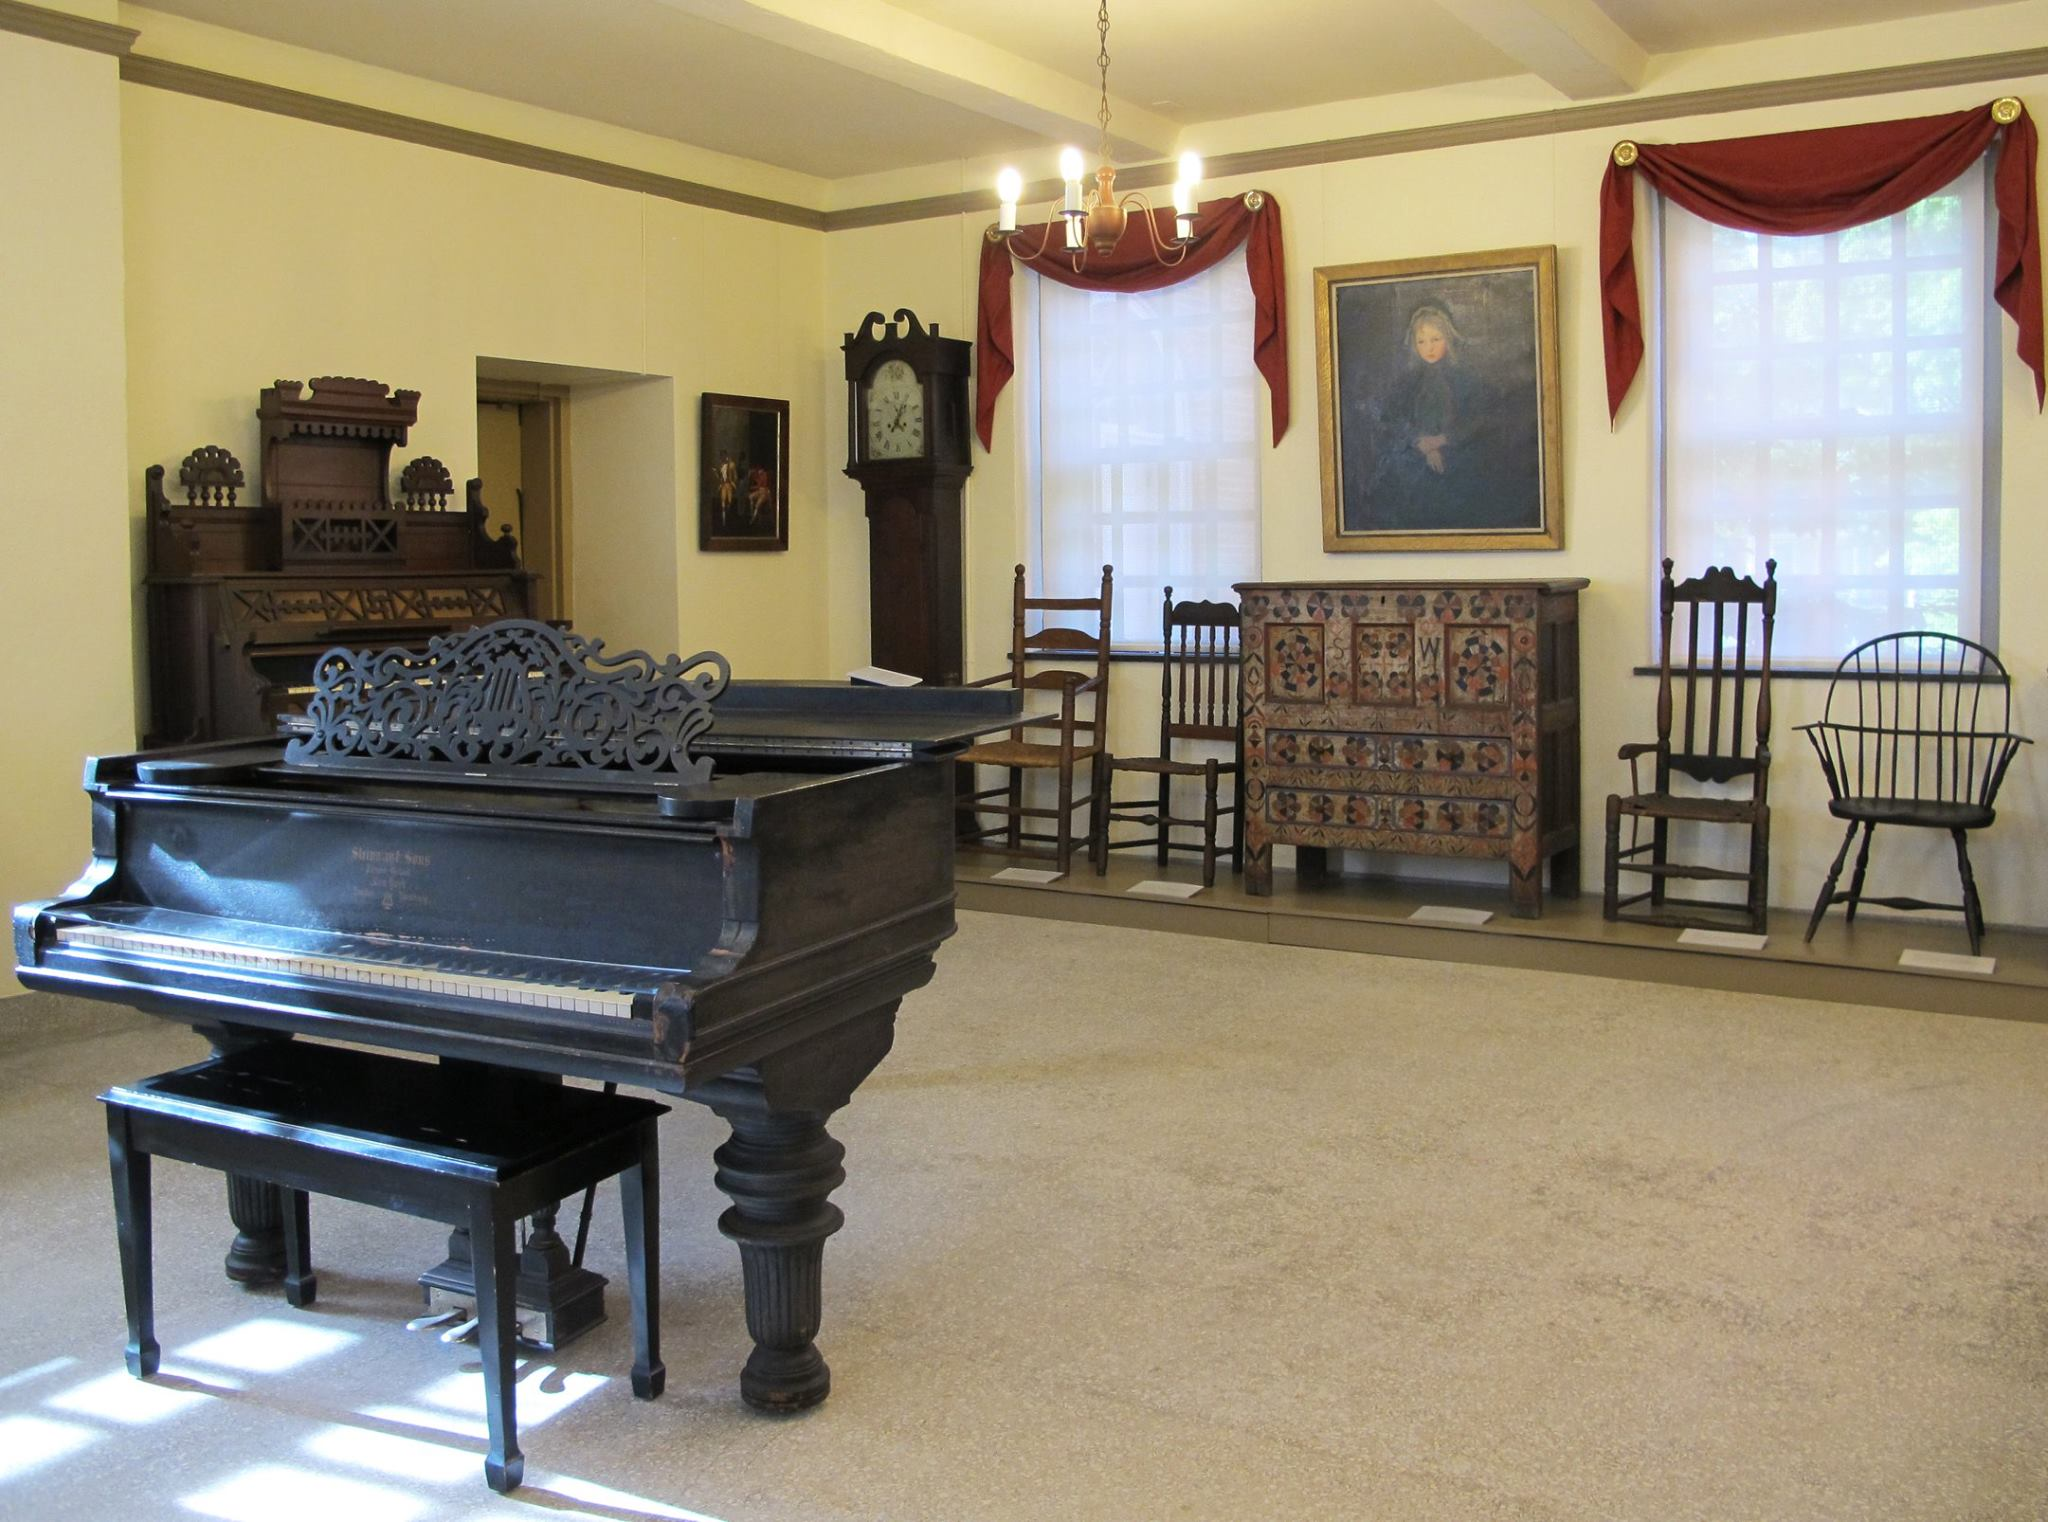 Memorial Hall's Music Room at PVMA, Old Deerfield MA